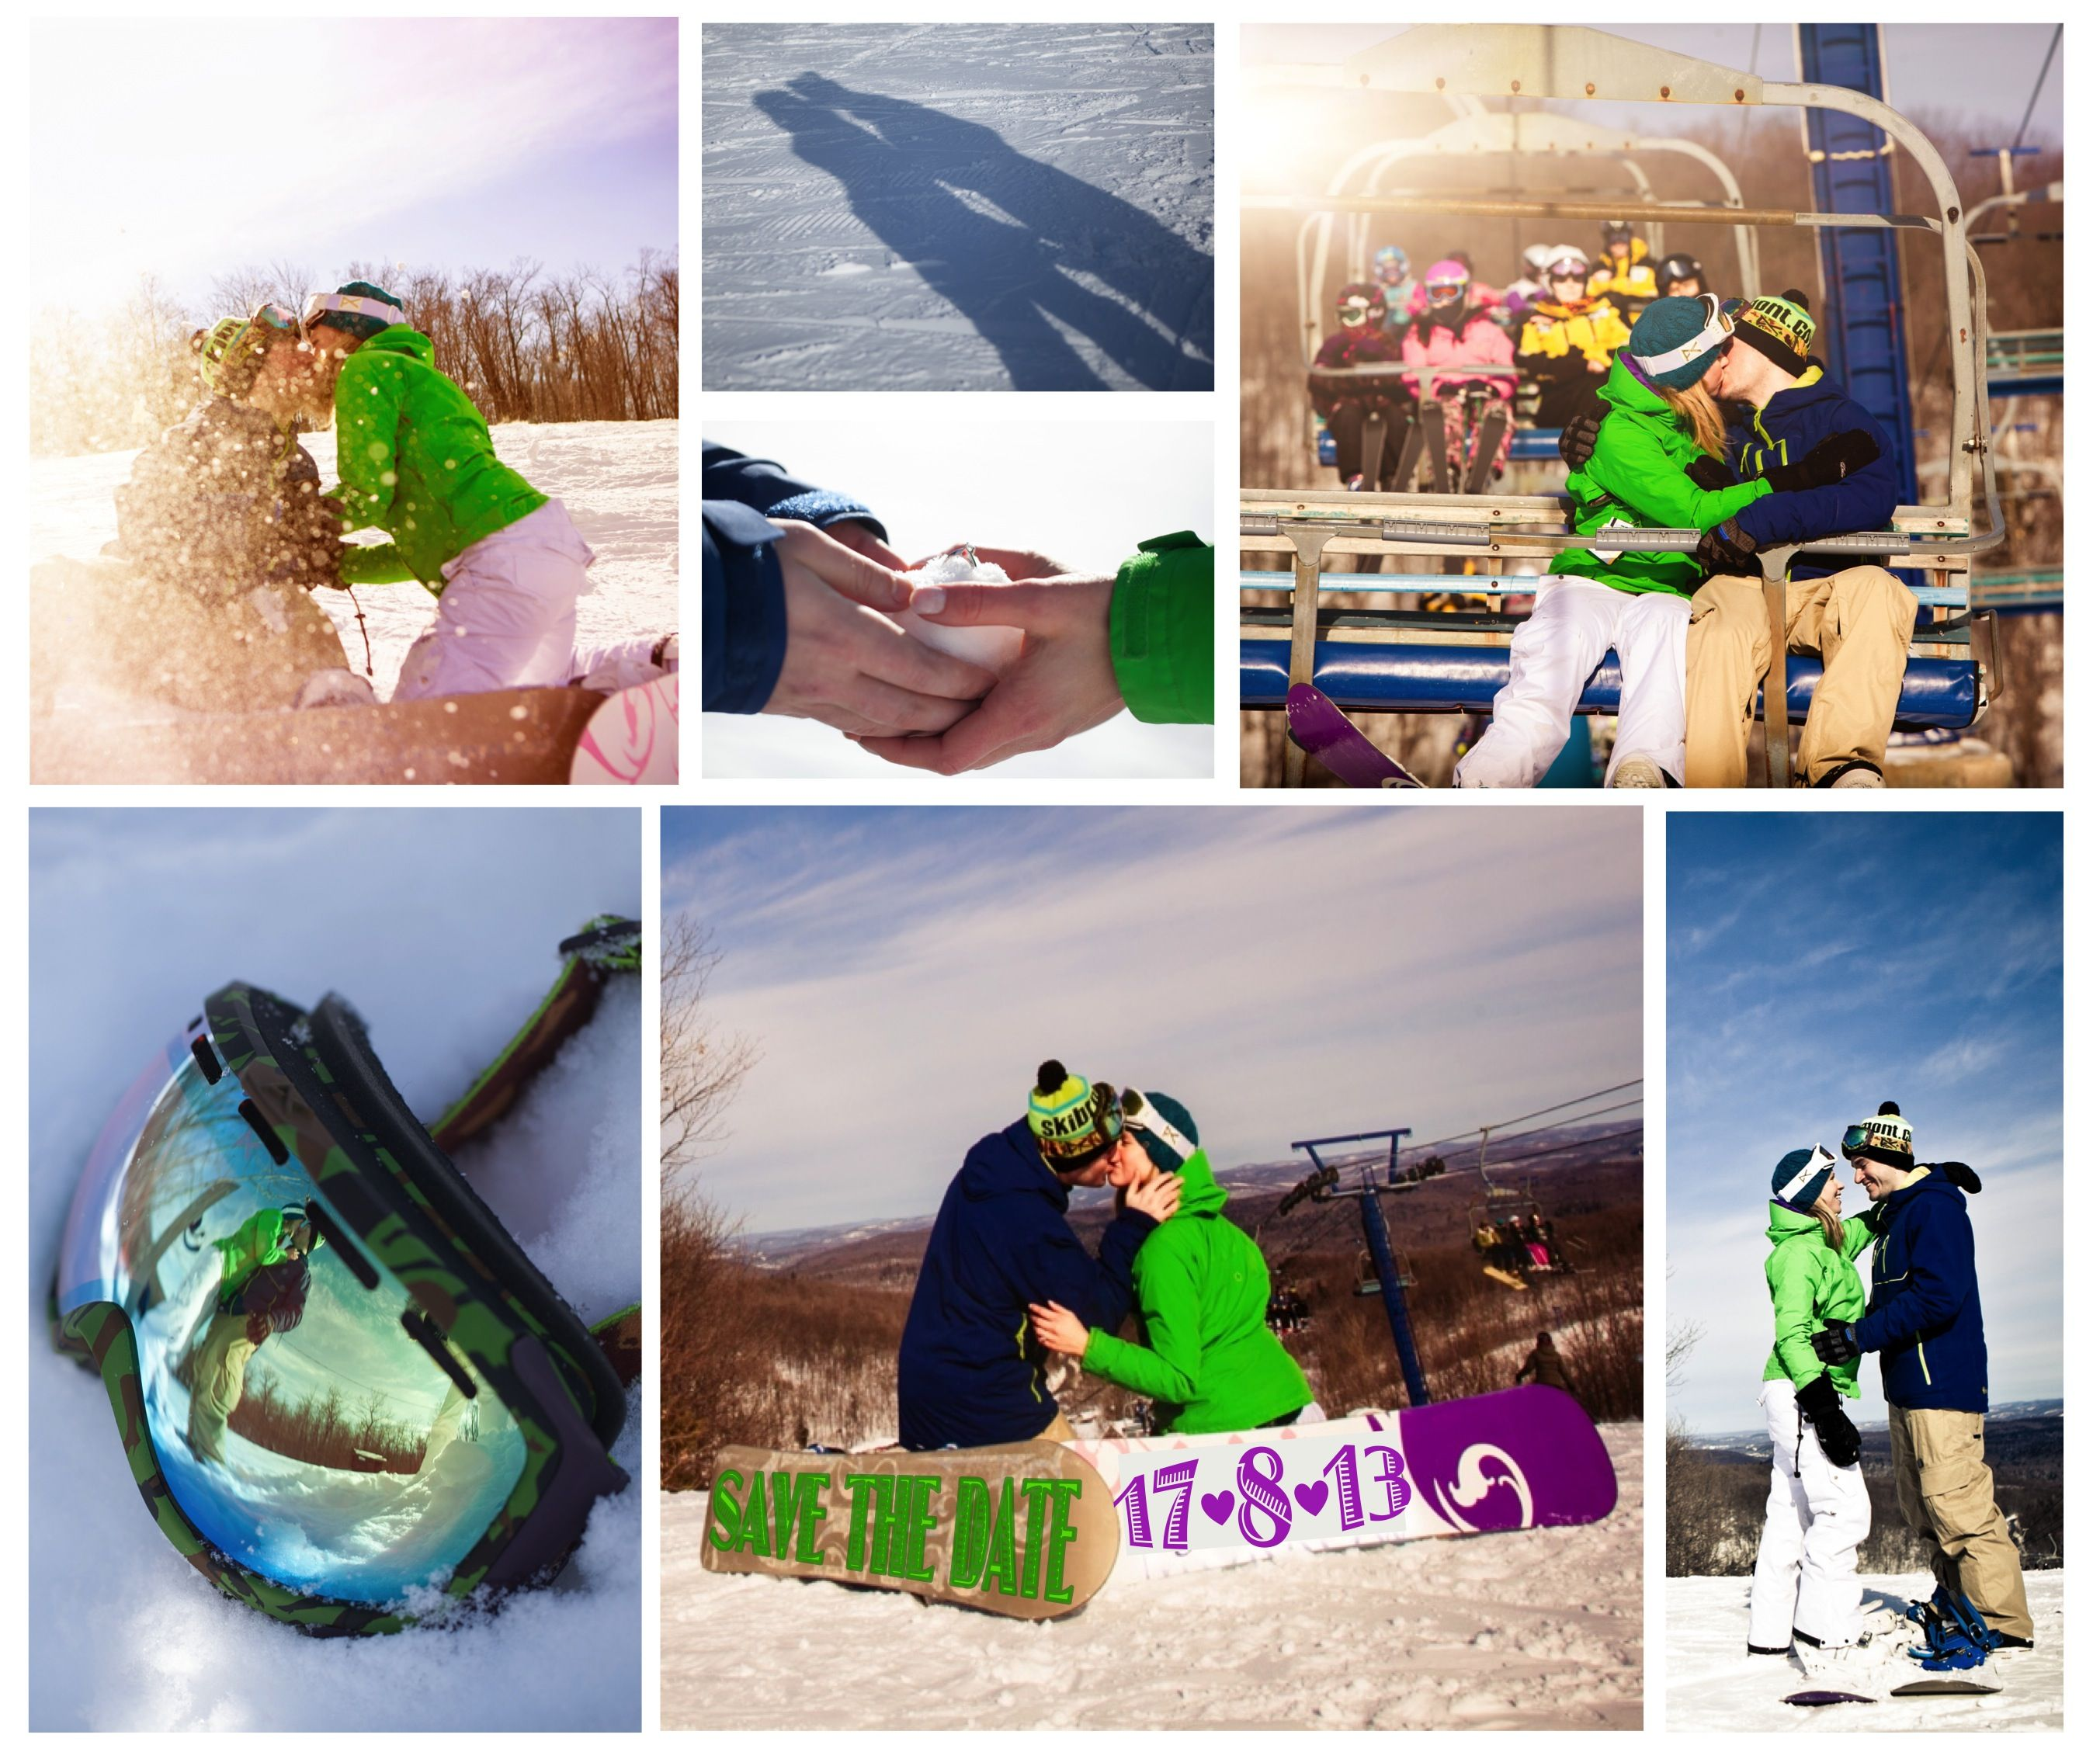 Snowboarding engagement shoot and SAVE THE DATE cards. Photography by StudioArtMaria.